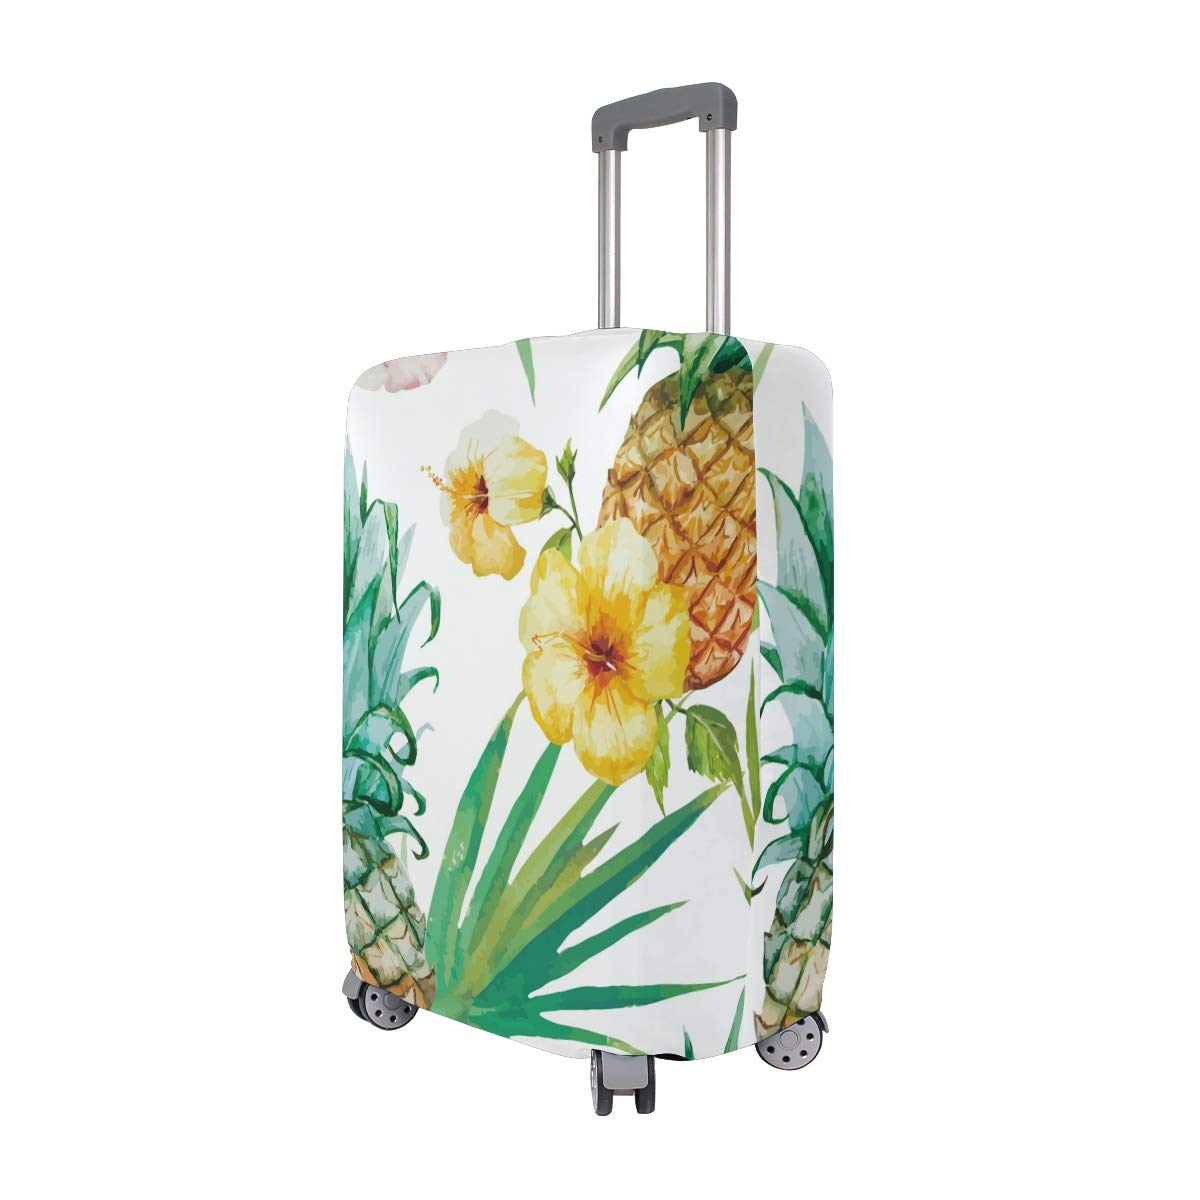 Baggage Covers Watercolor Tropical Plant Pineapple Washable Protective Case